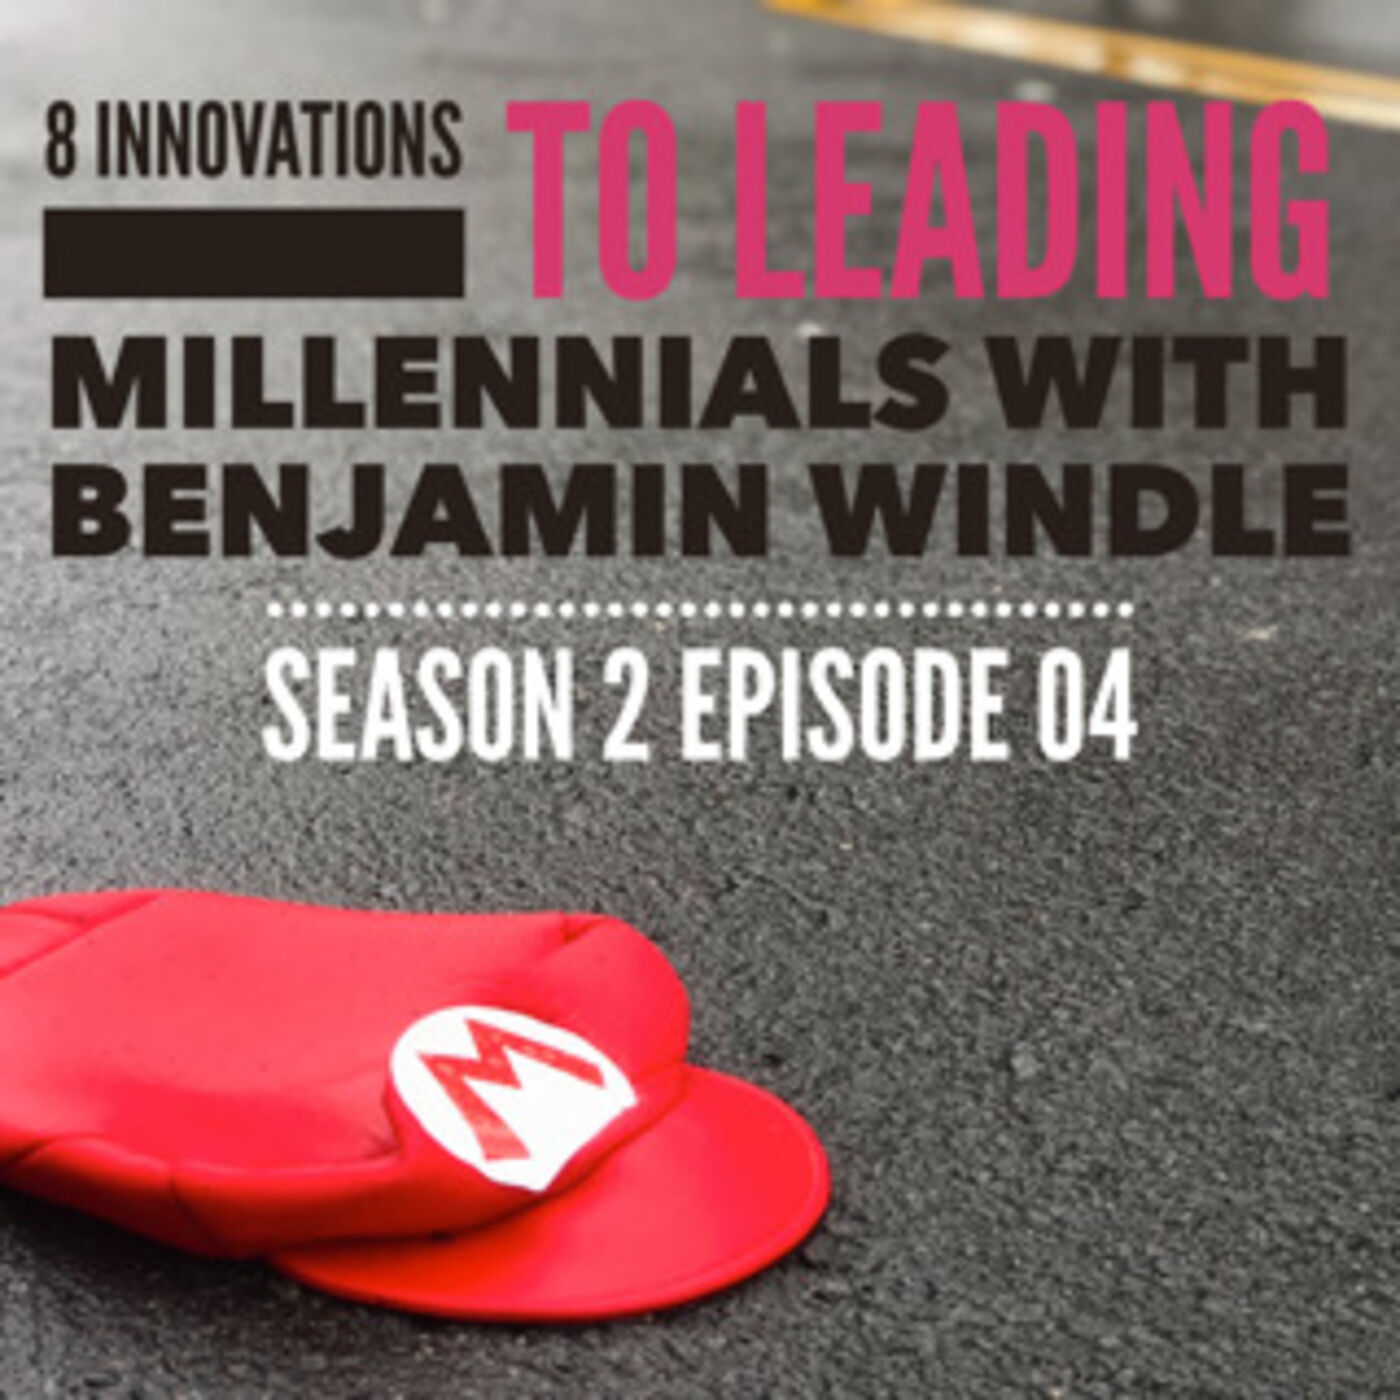 Season 2 Episode 04 - 8 Innovations To Leading Millennials with Benjamin Windle